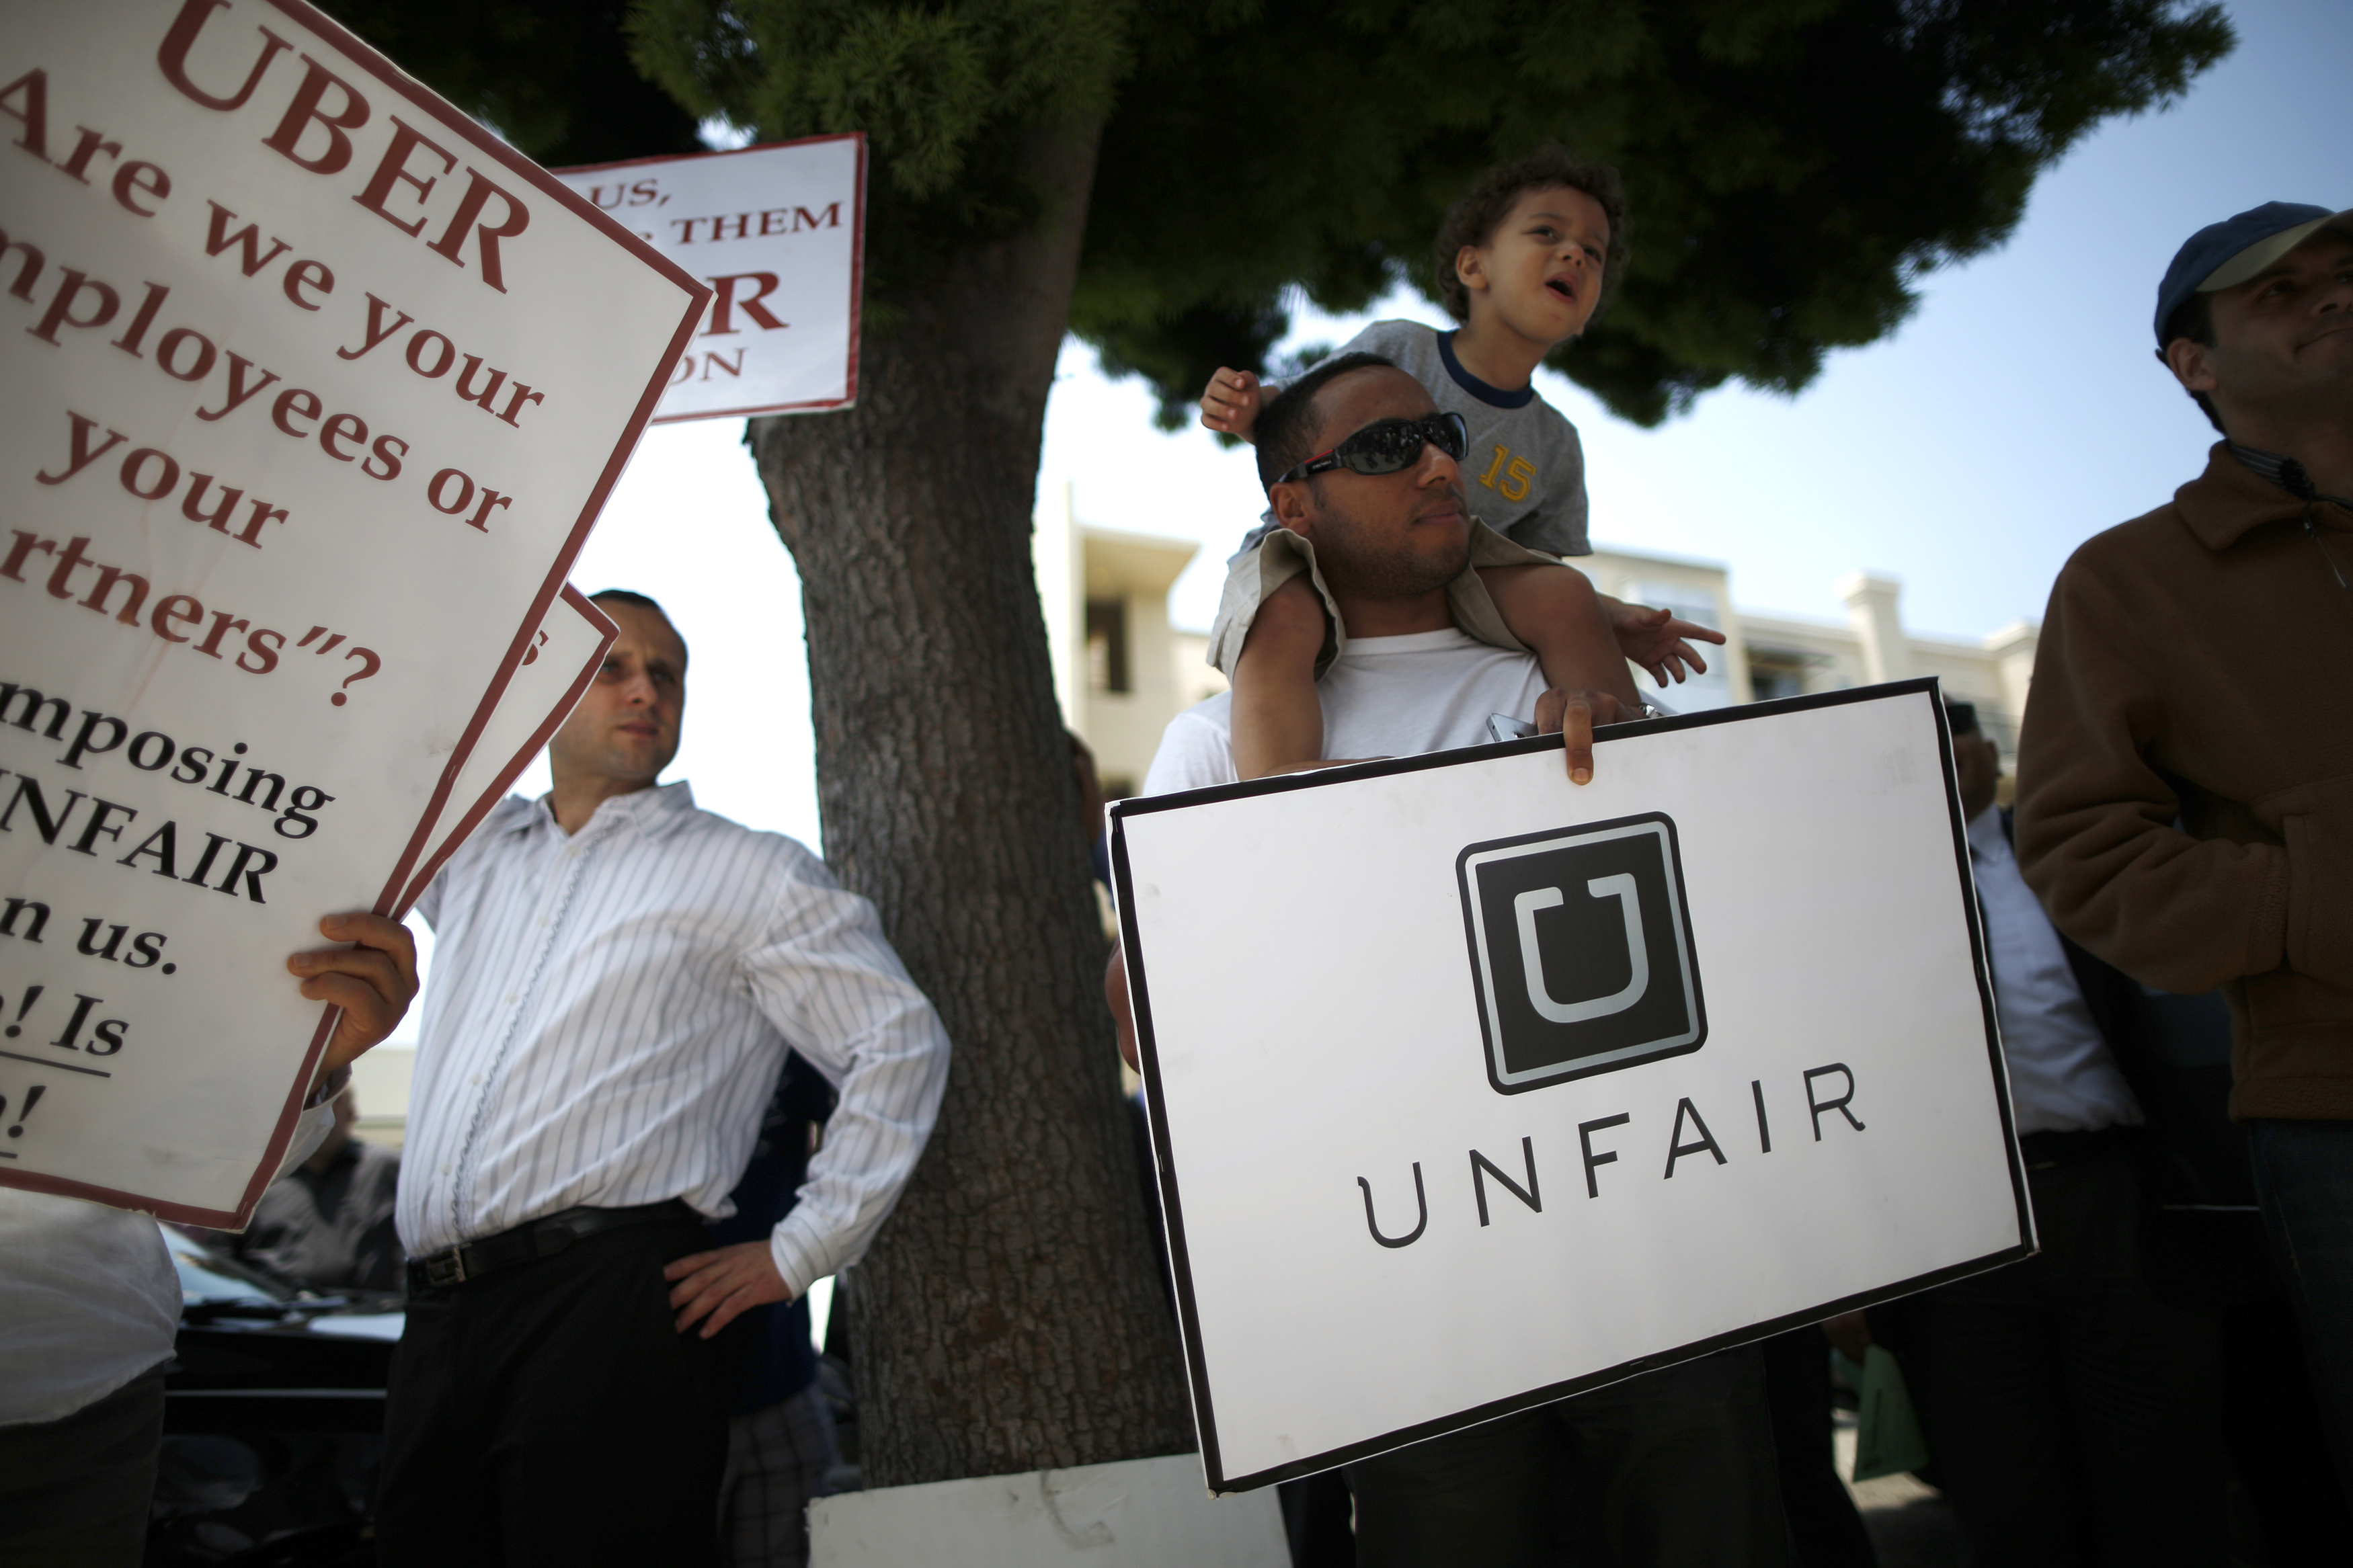 Uber driver Levin protests with other drivers against working conditions, in Santa Monica